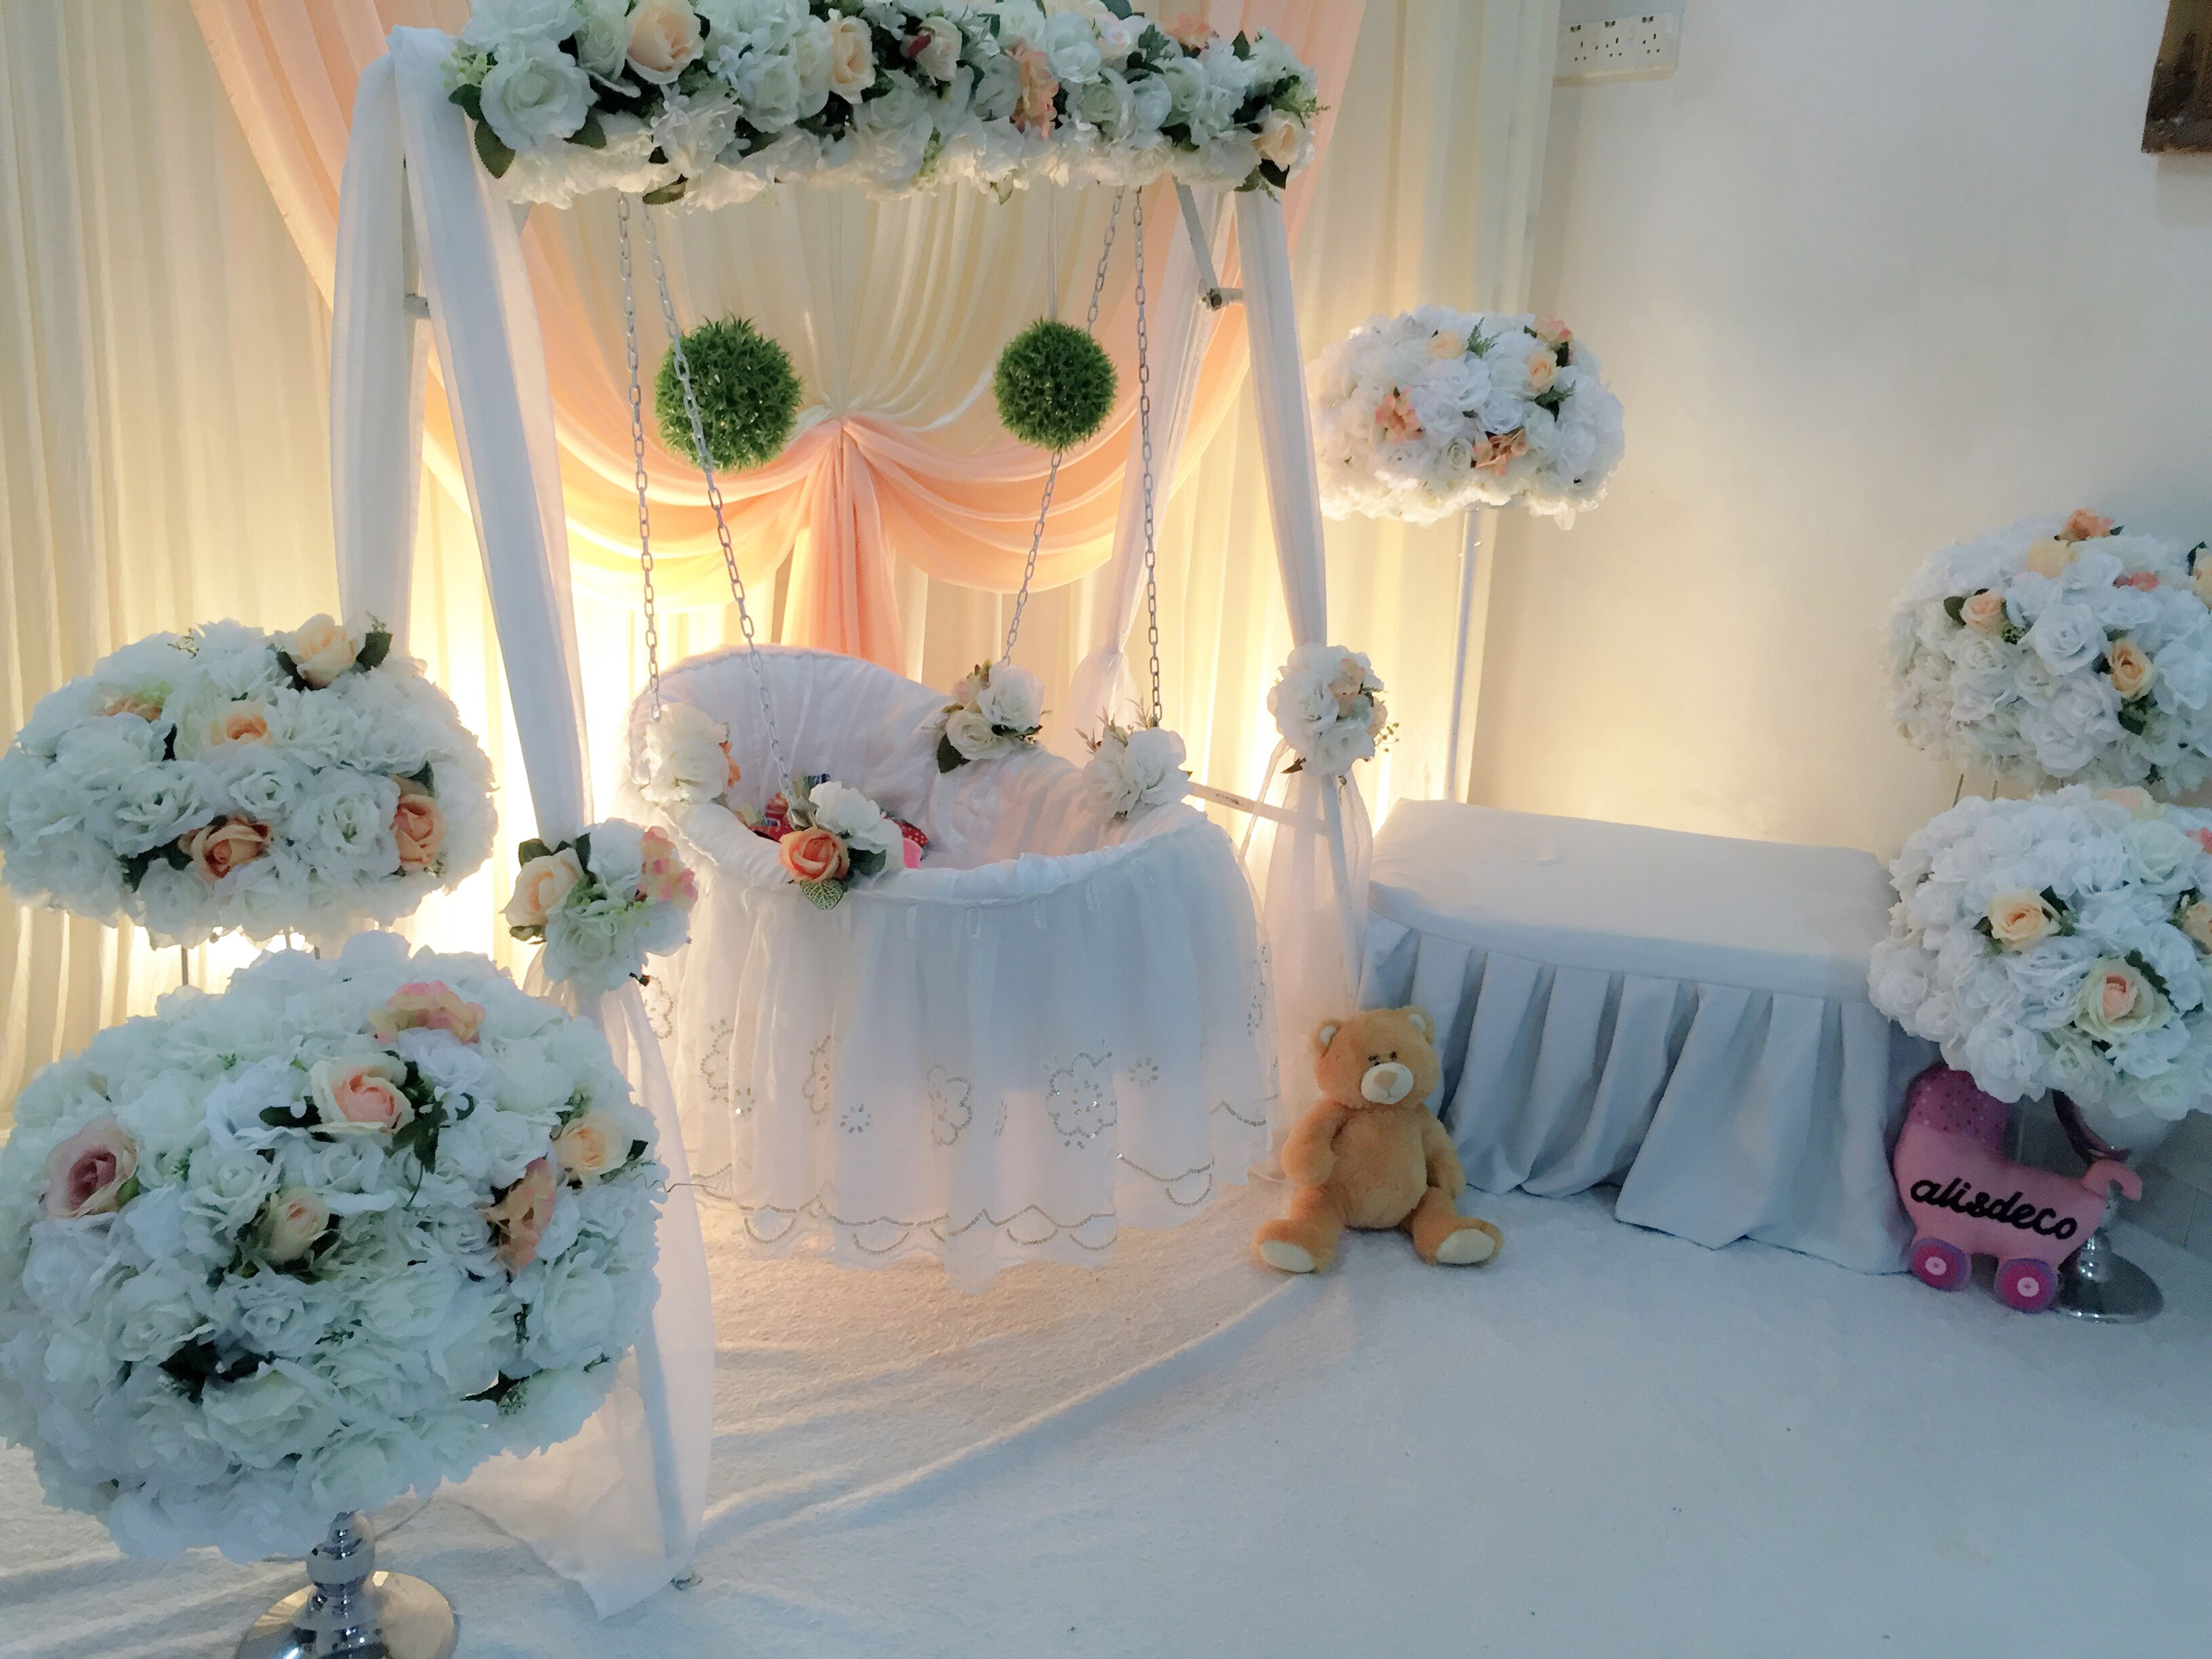 Decoration baby cradle for naming ceremony pelamin buaian for Baby name ceremony decoration